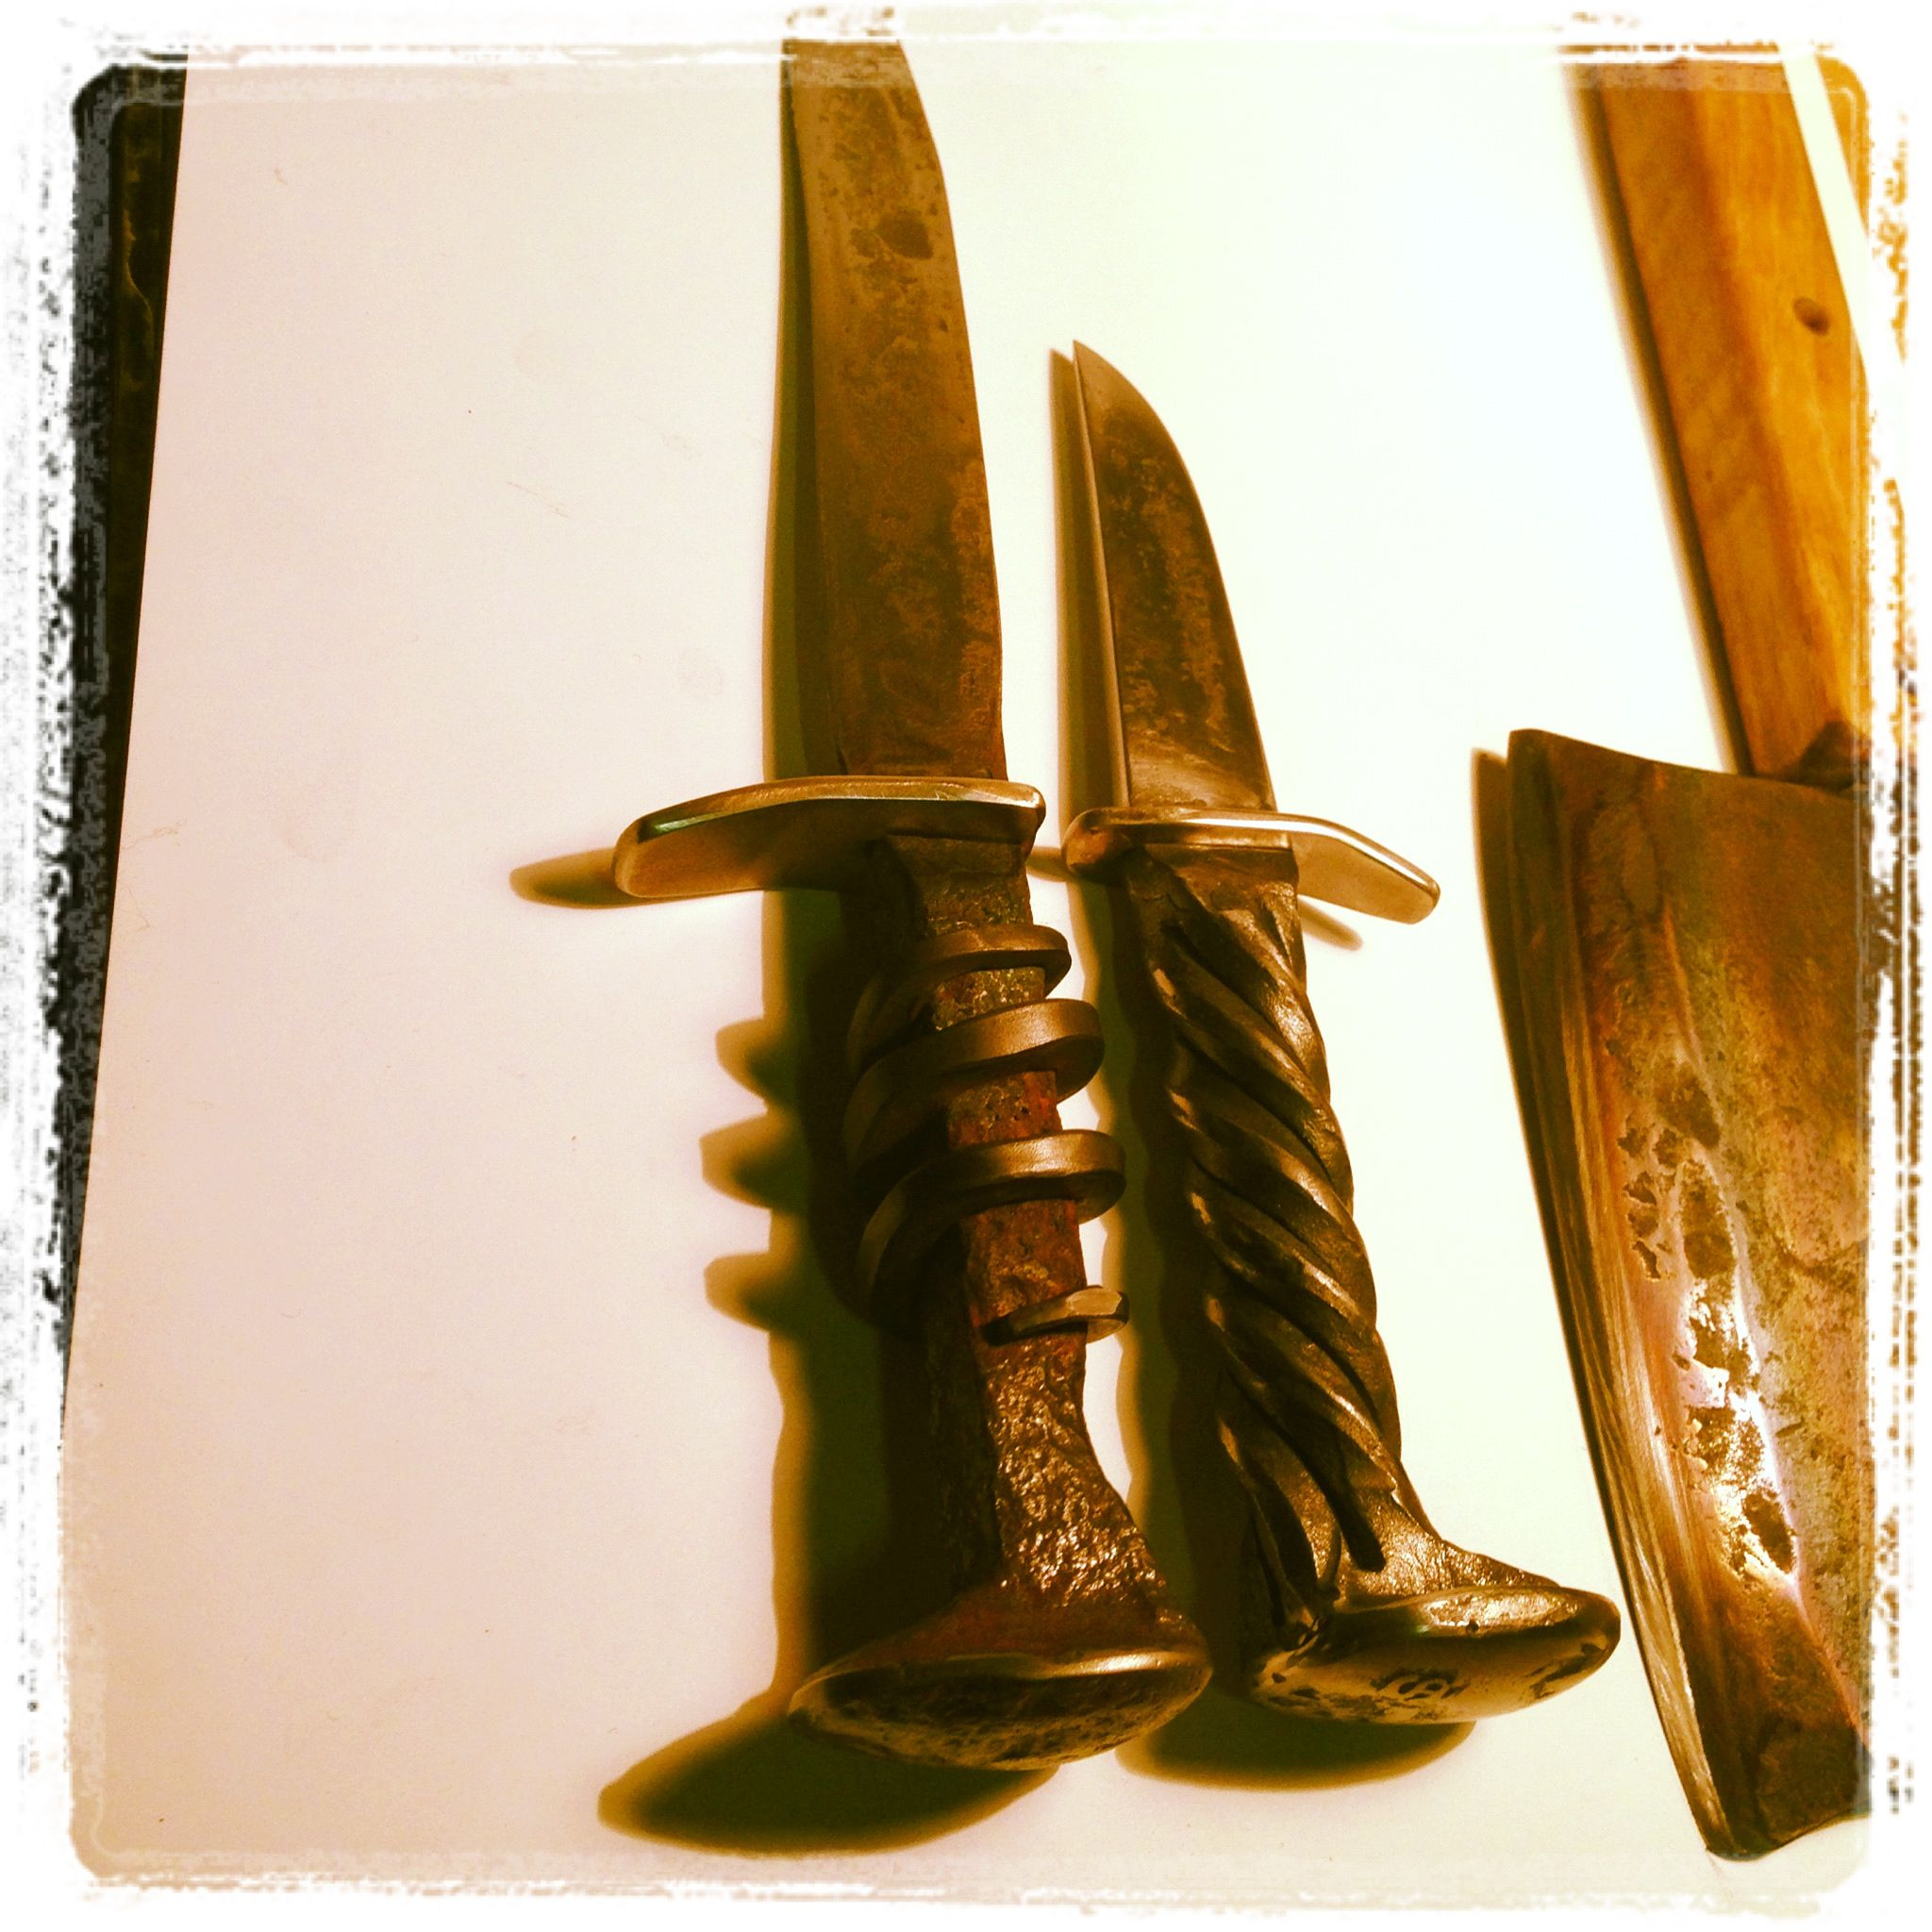 Forged knives